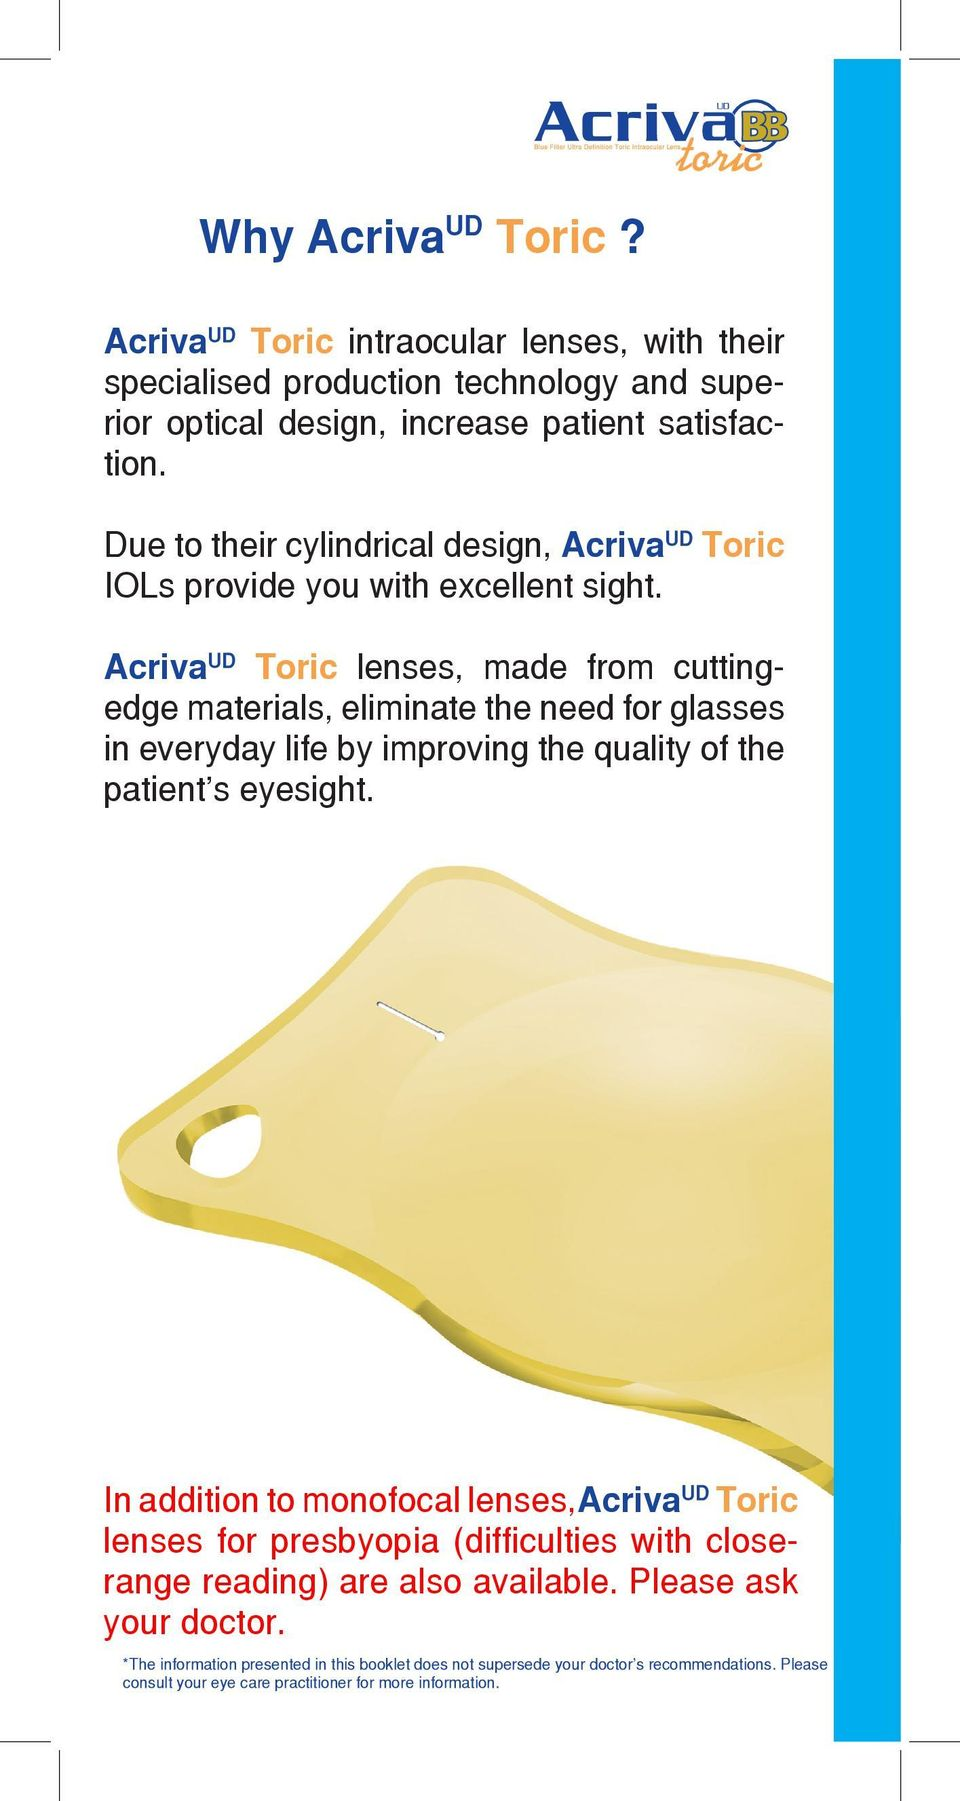 Due to their cylindrical design, Acriva UD Toric IOLs provide you with excellent sight.